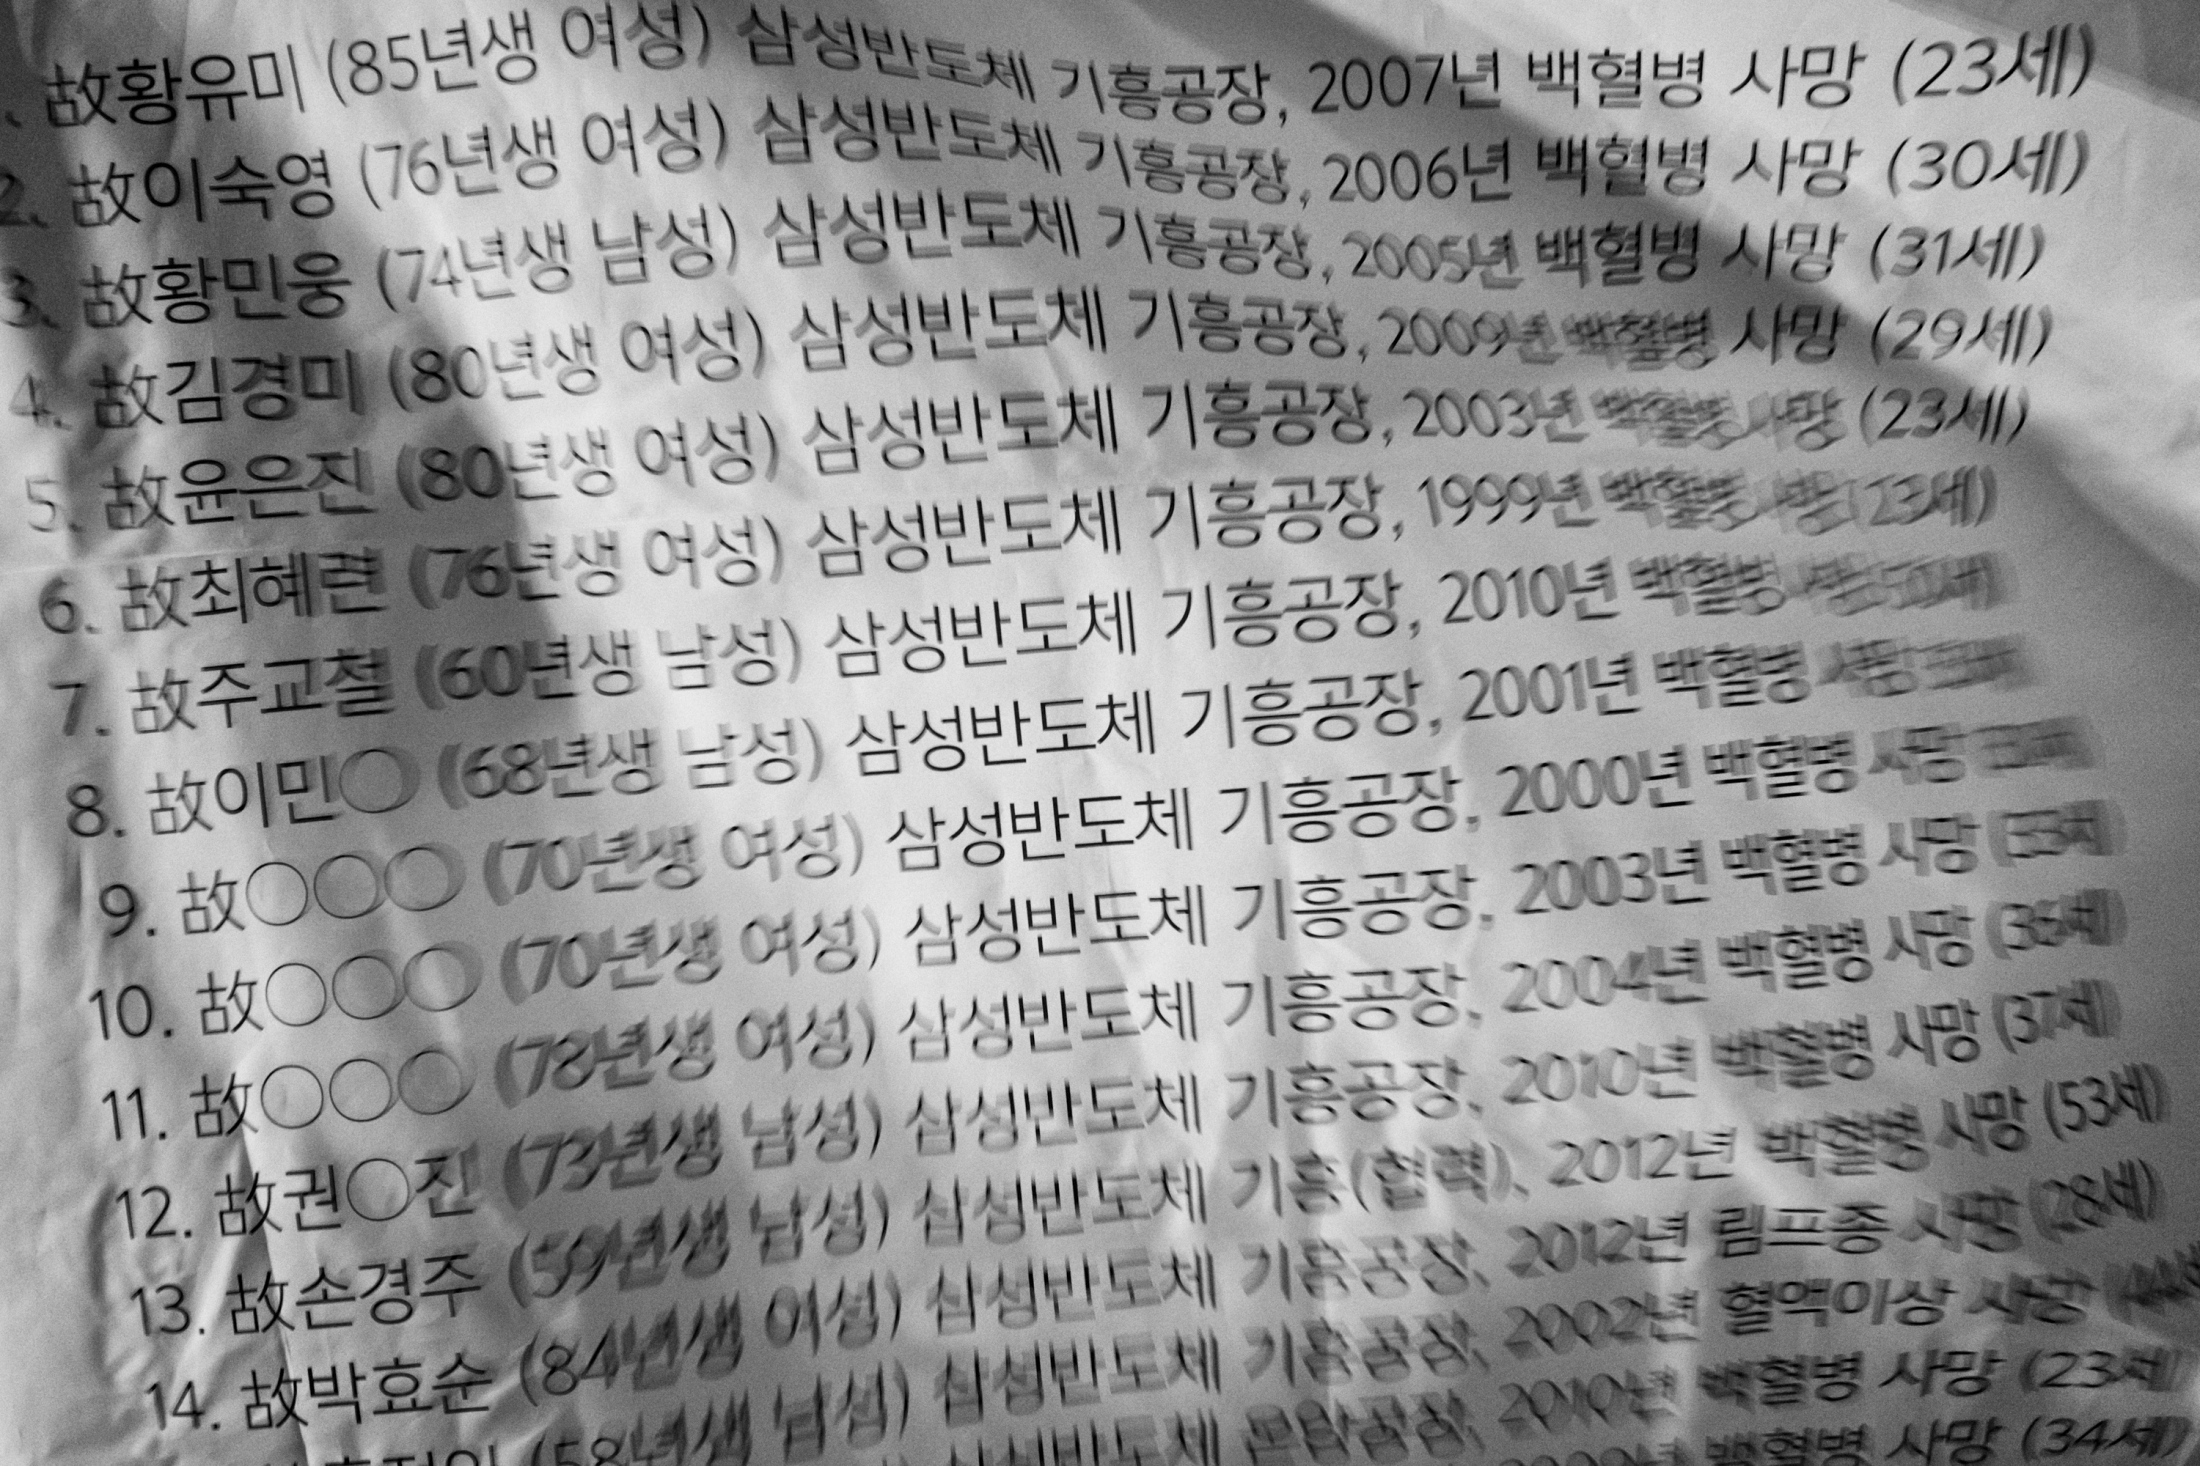 The names of the dead victims from Samsung Electronics semiconductor chip factories are seen on a banner set up on the street in front of Samsung Town Headquarters in Seoul, South Korea on Mar. 6, 2017.